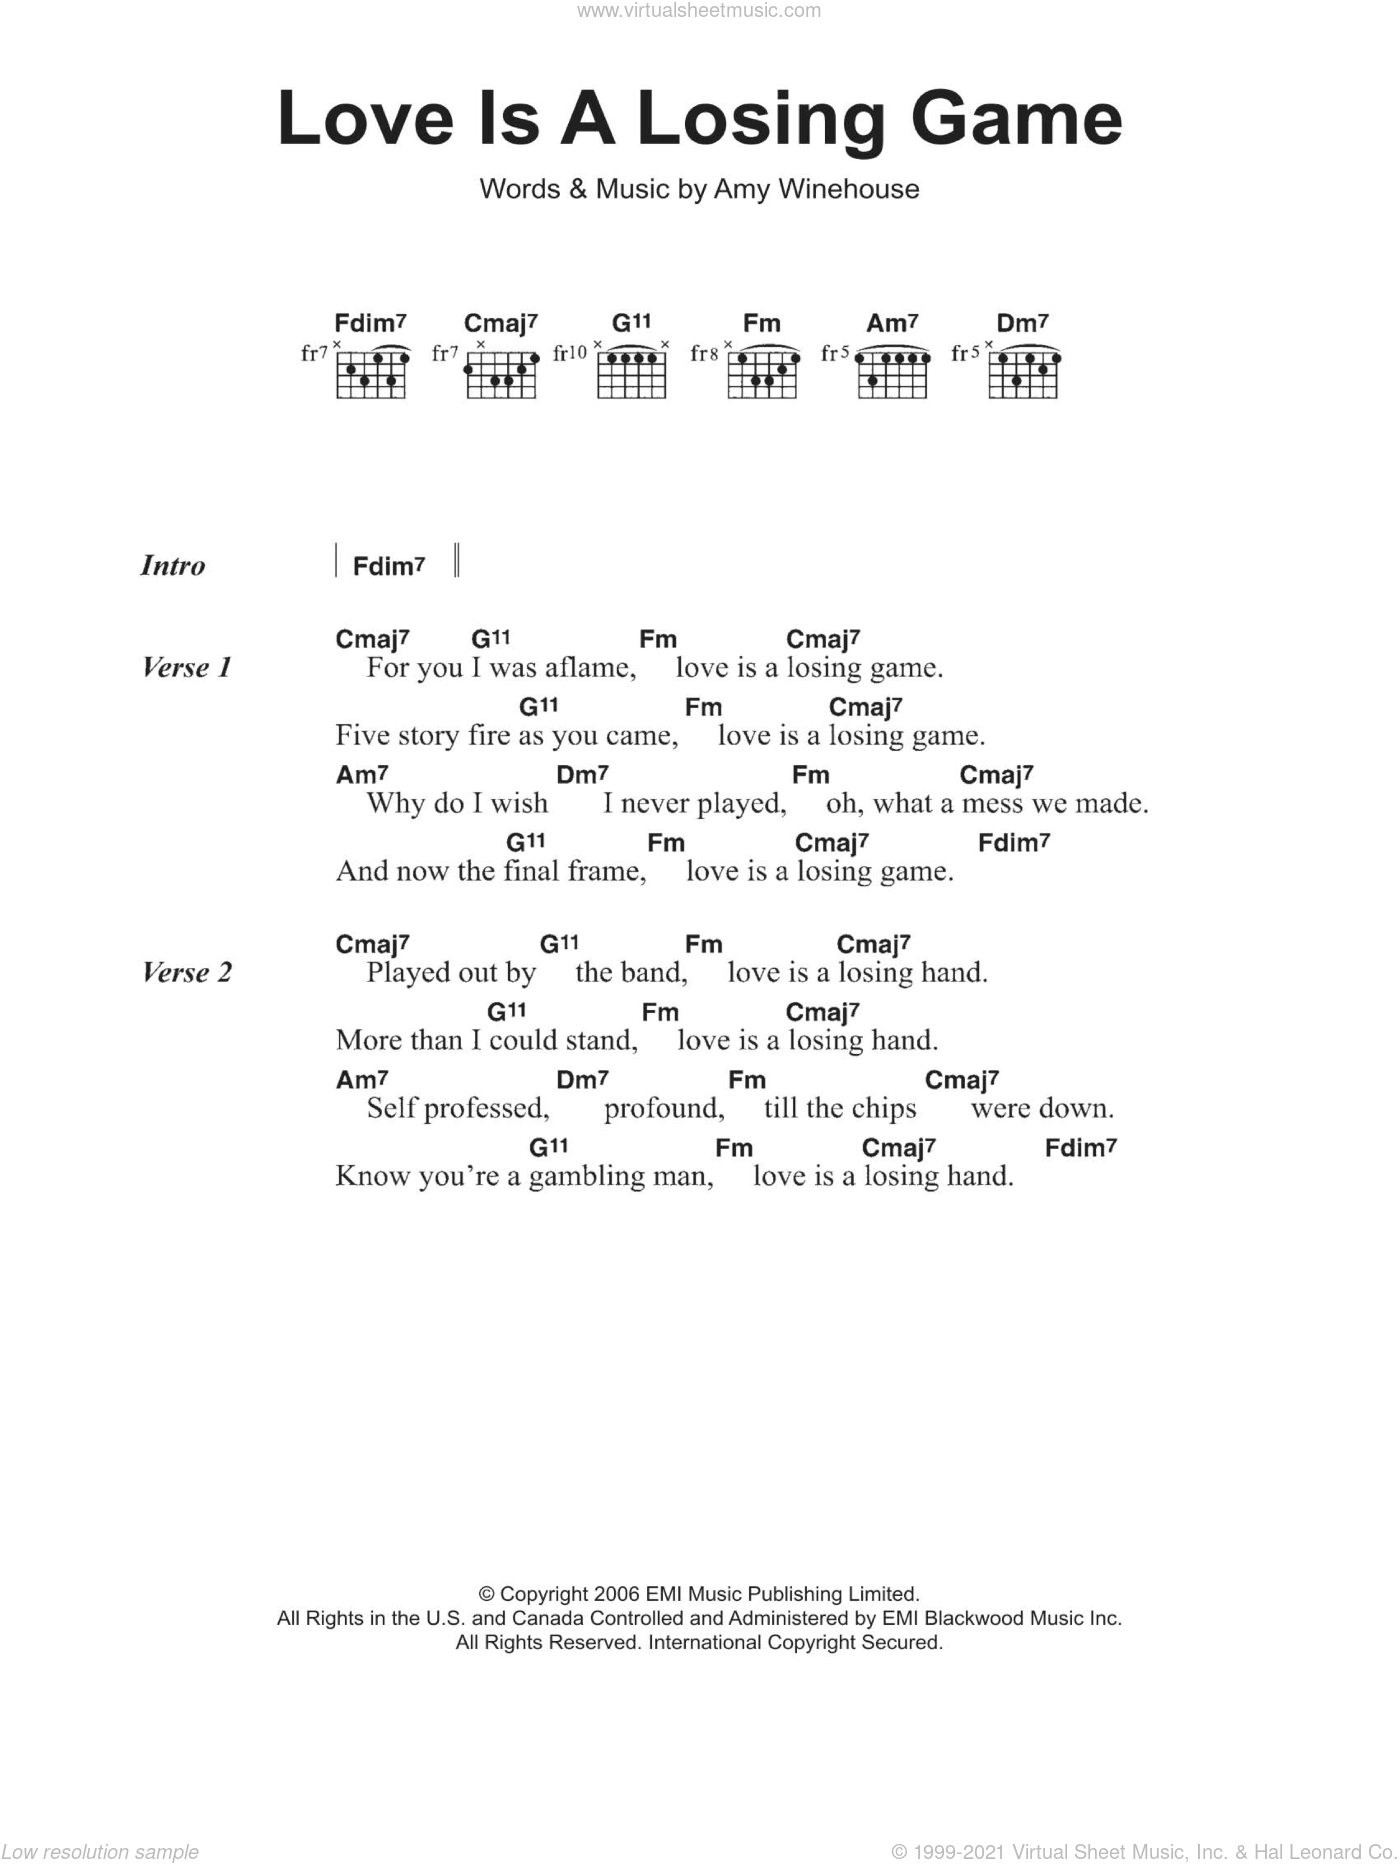 Love Is A Losing Game sheet music for guitar (chords) by Amy Winehouse, intermediate skill level